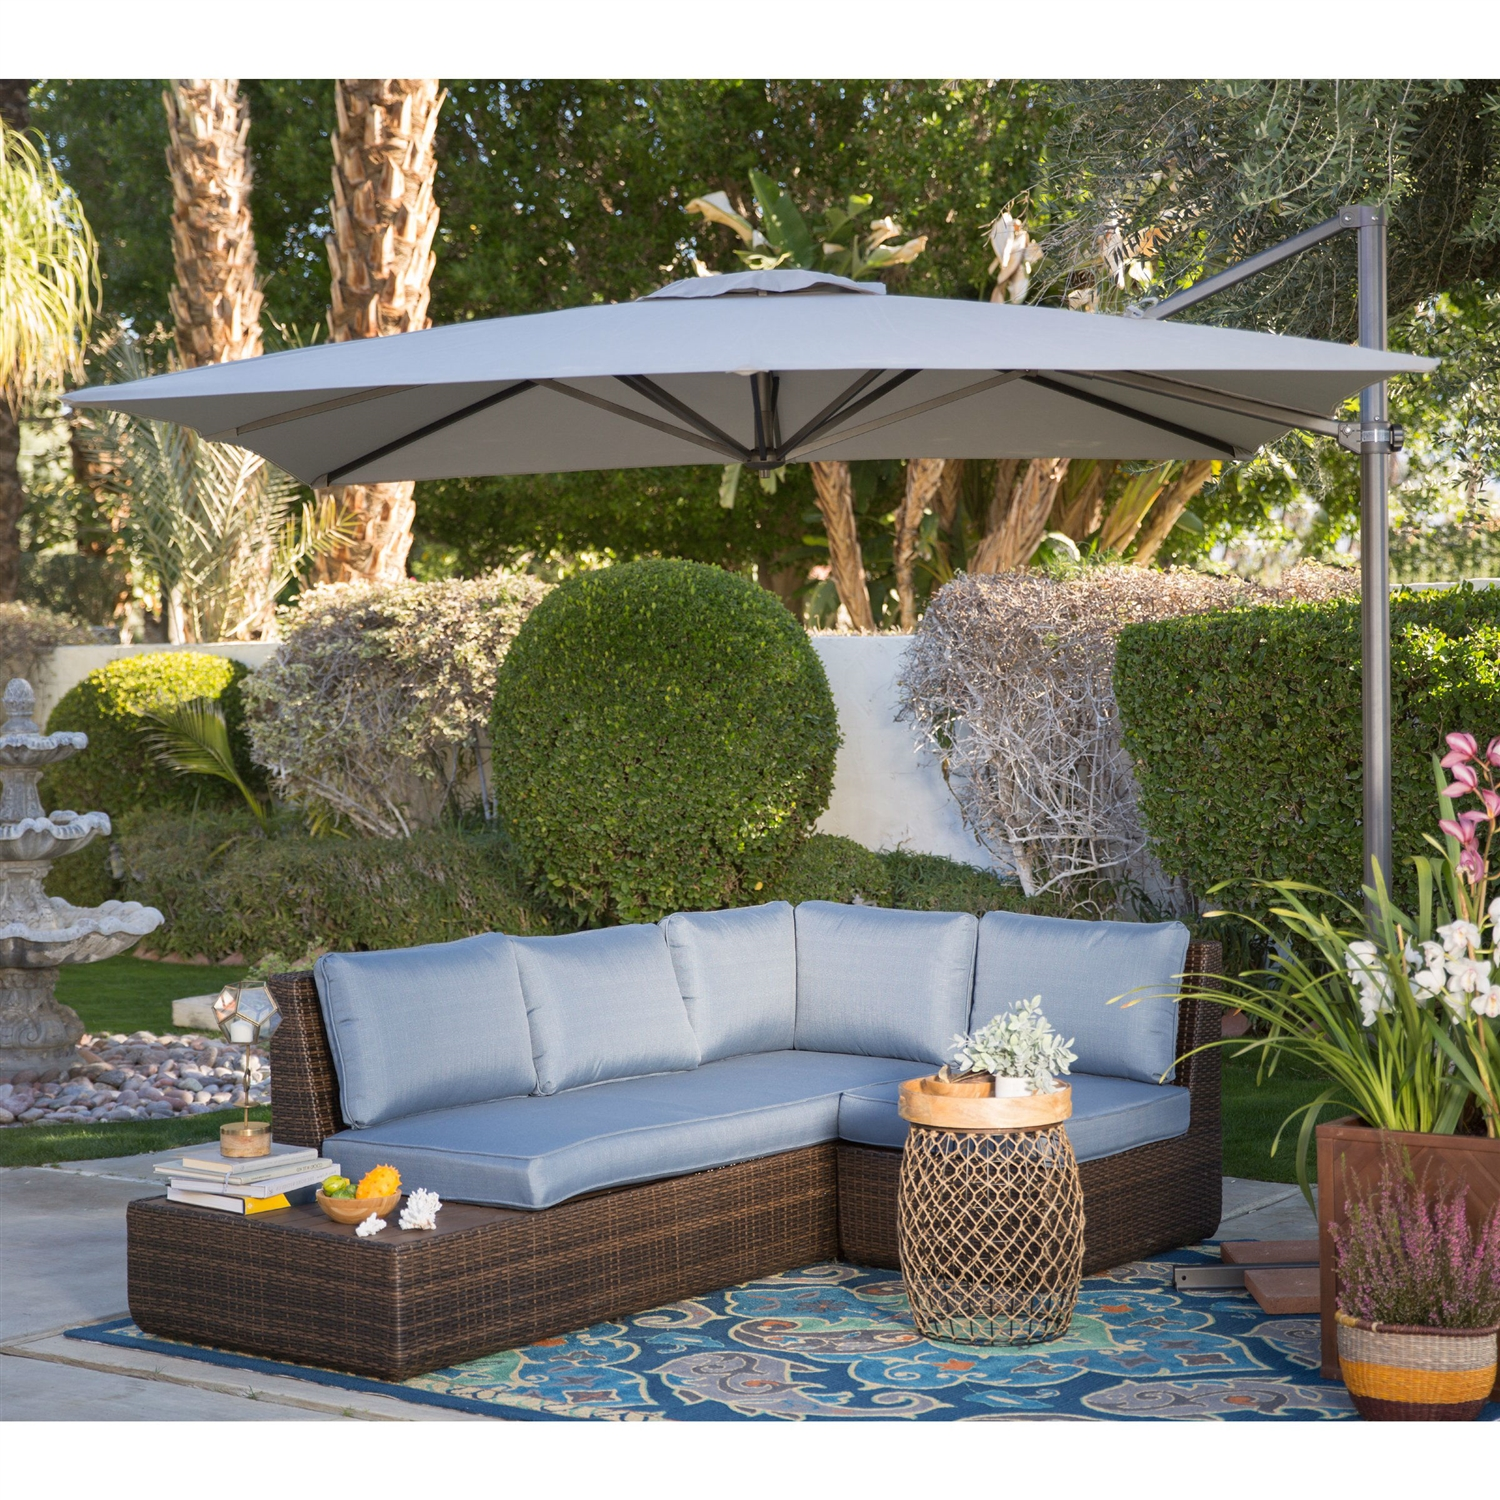 square 85 ft offset patio umbrella with mocha shade and bronze finish pole - Offset Patio Umbrella